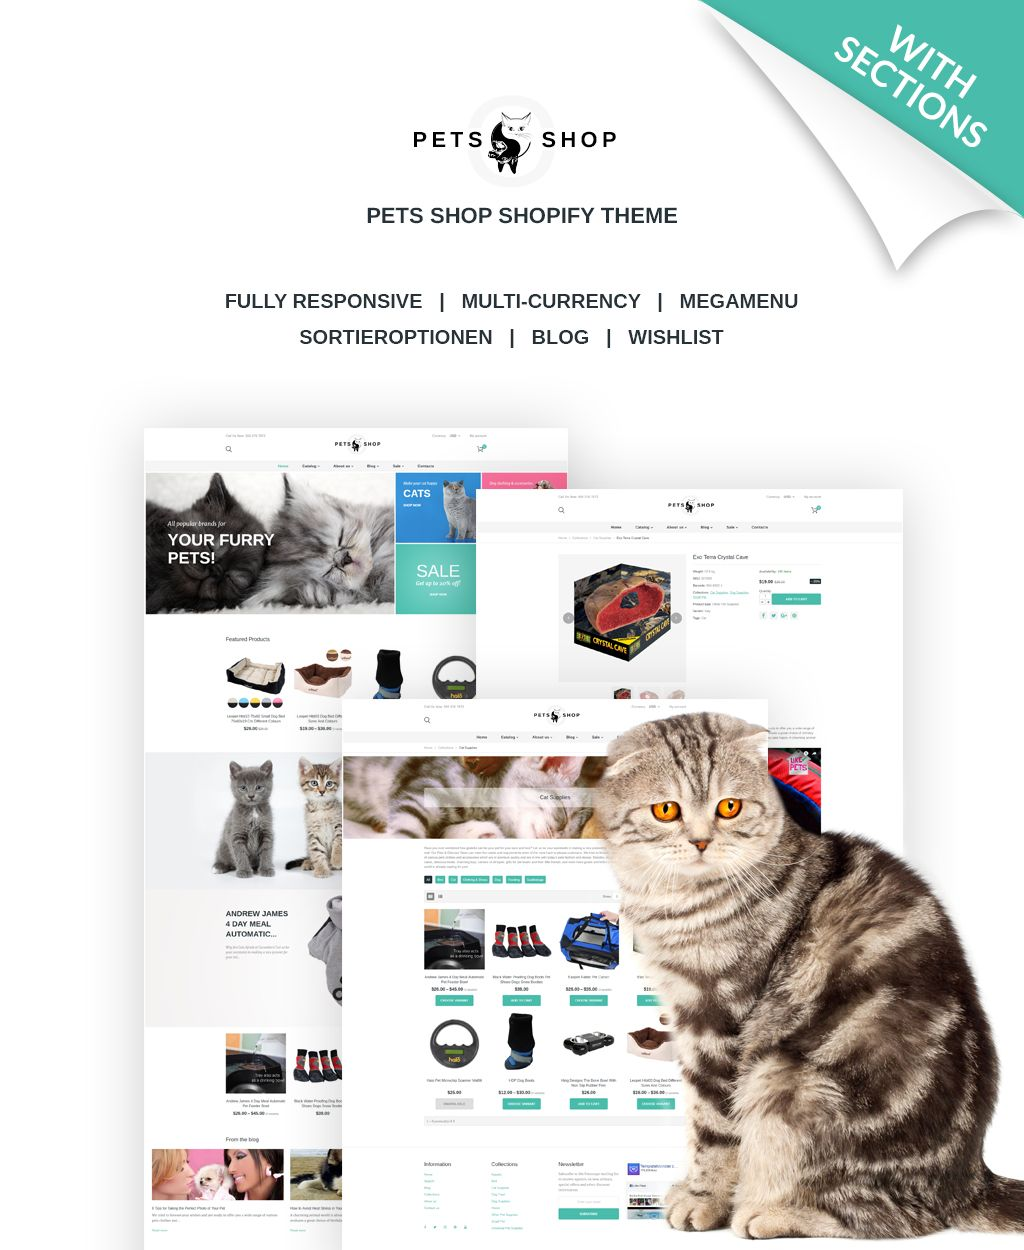 Pet Shop Responsive Shopify Theme Petshop Petcare Cats Dogs Shopify Shopify Theme Pet Shop Online Pet Store